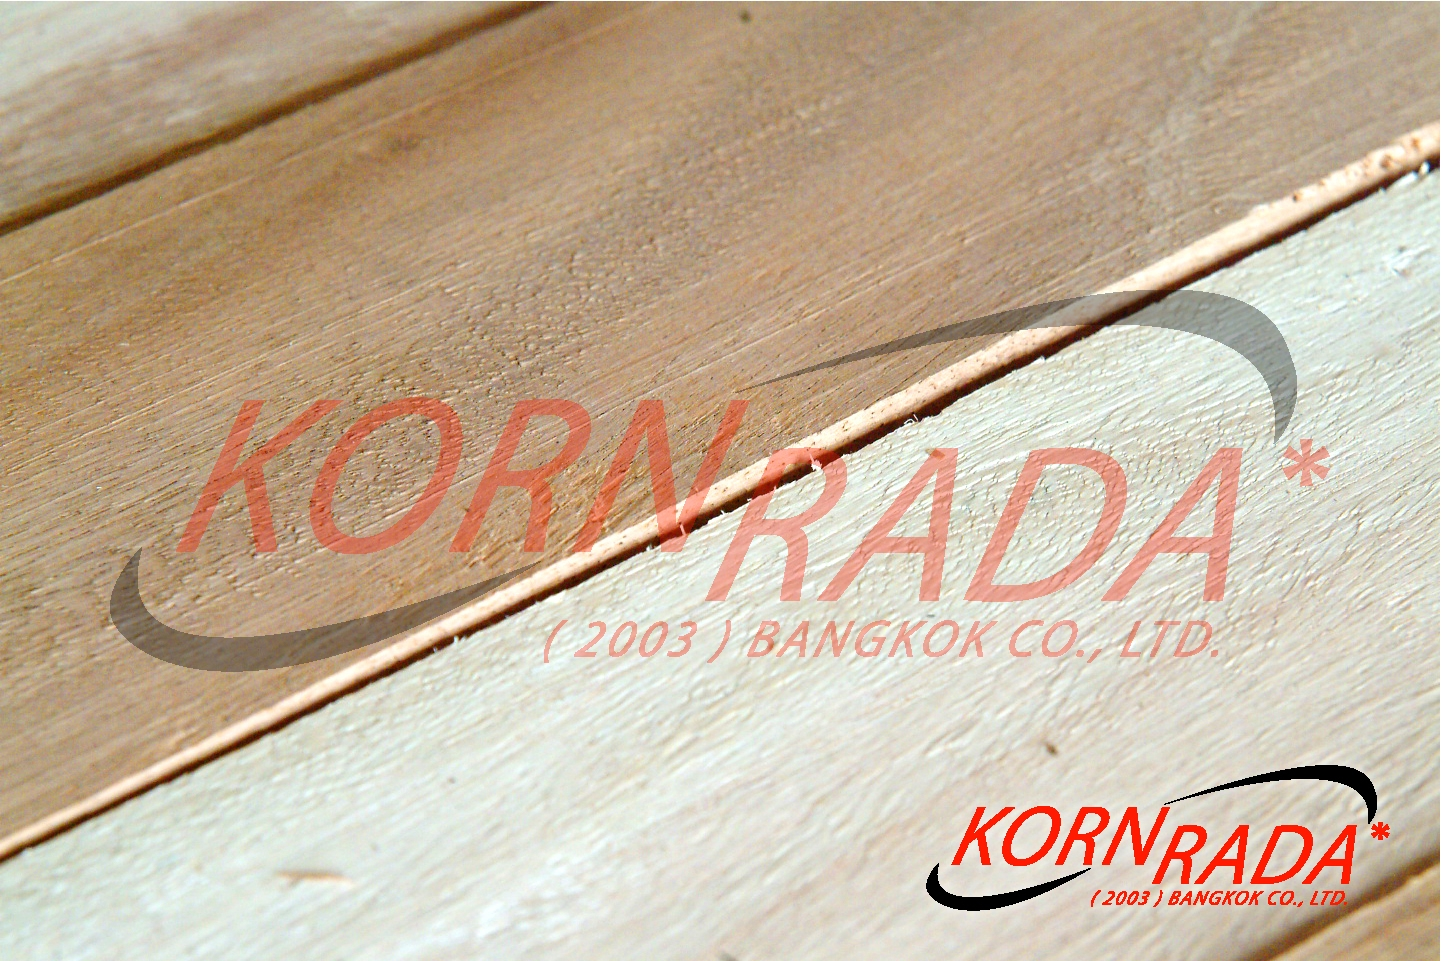 kornrada_products_2198